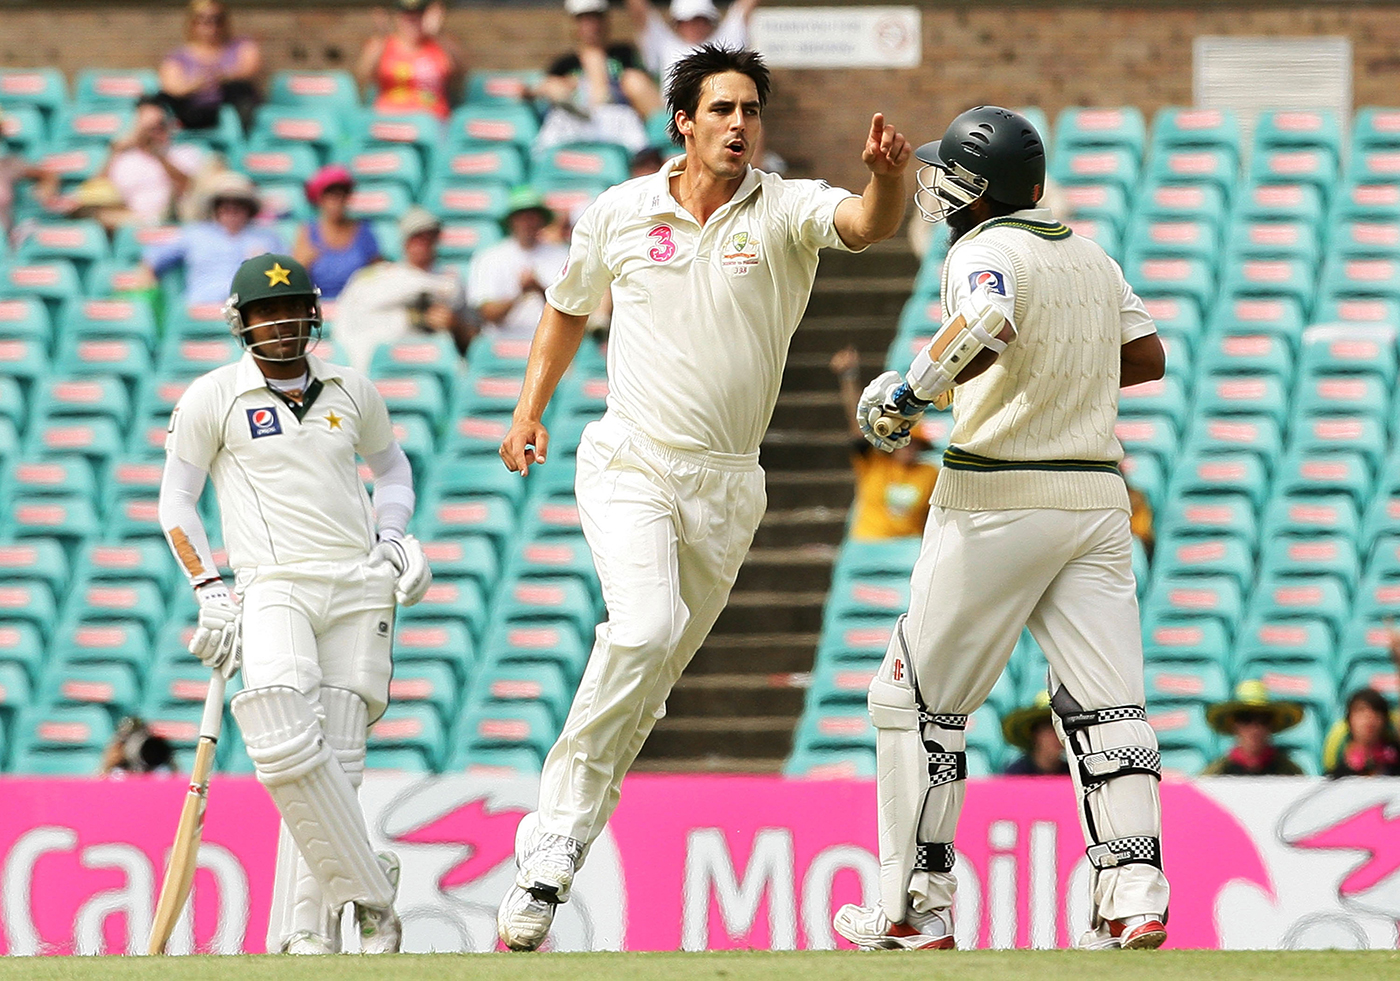 Mohammad Yousuf's dismissal in the Sydney Test of 2010 did not wreck Pakistan's first innings, but the loss of his wicket meant his side's chances of a win plummeted